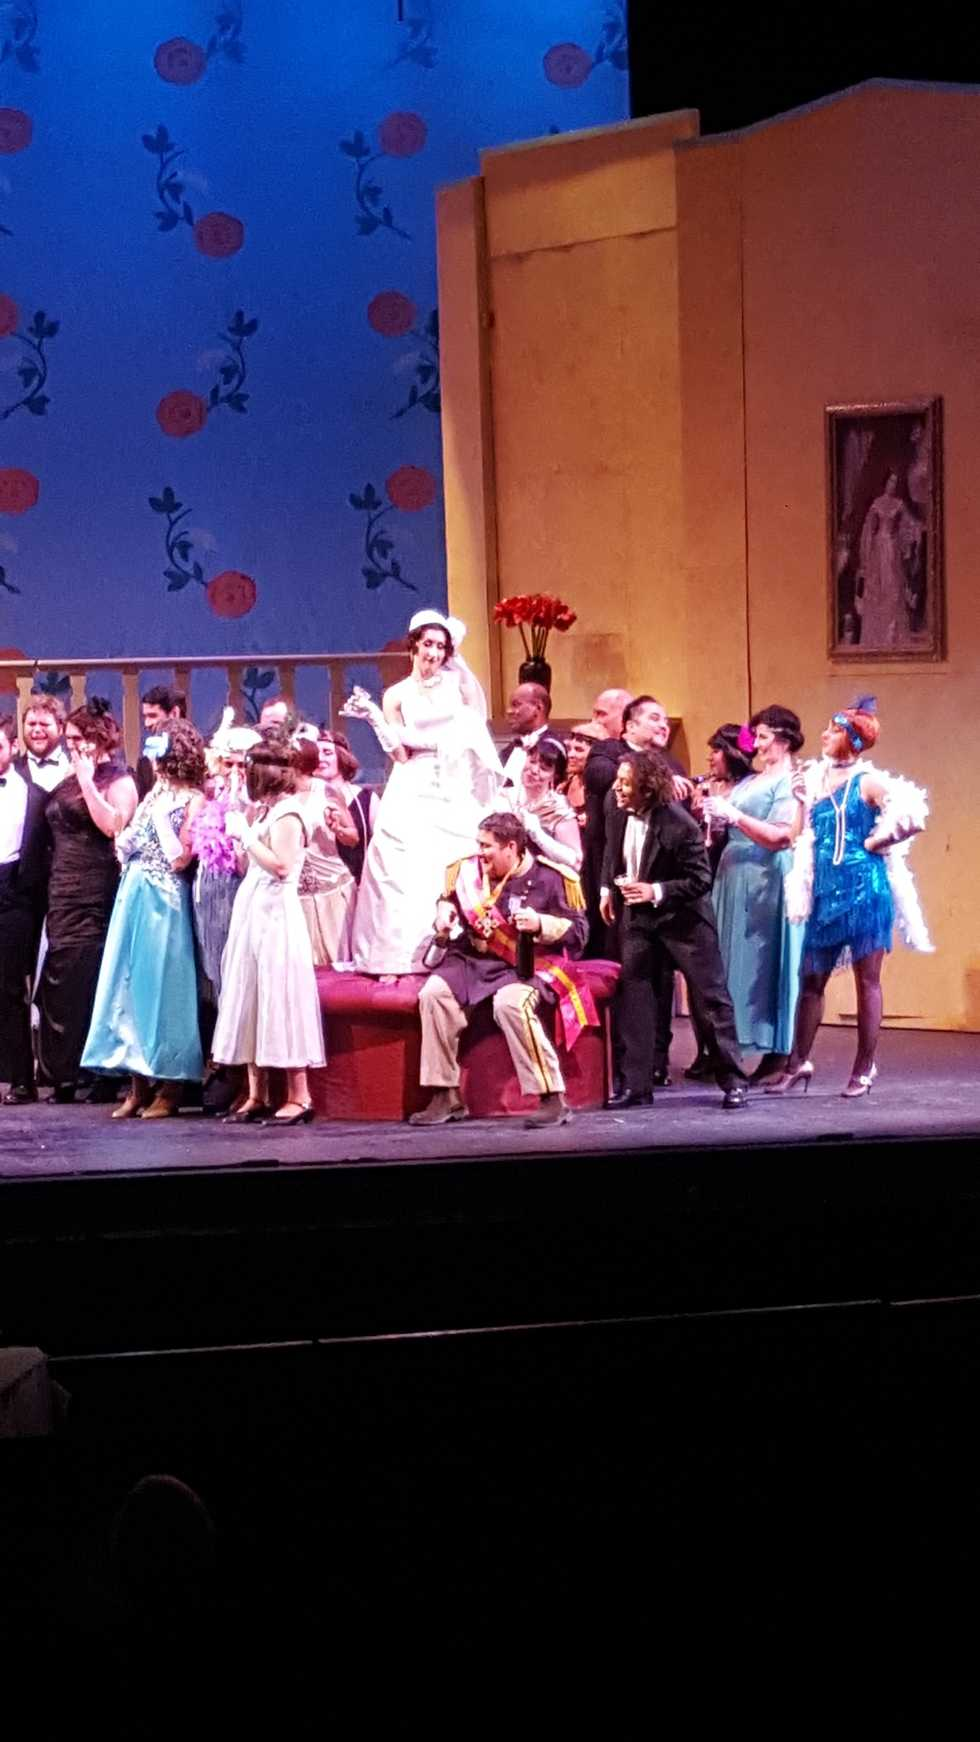 A scene from the Wichita Grand Opera production of Grand Duchess Of Gerolstein.